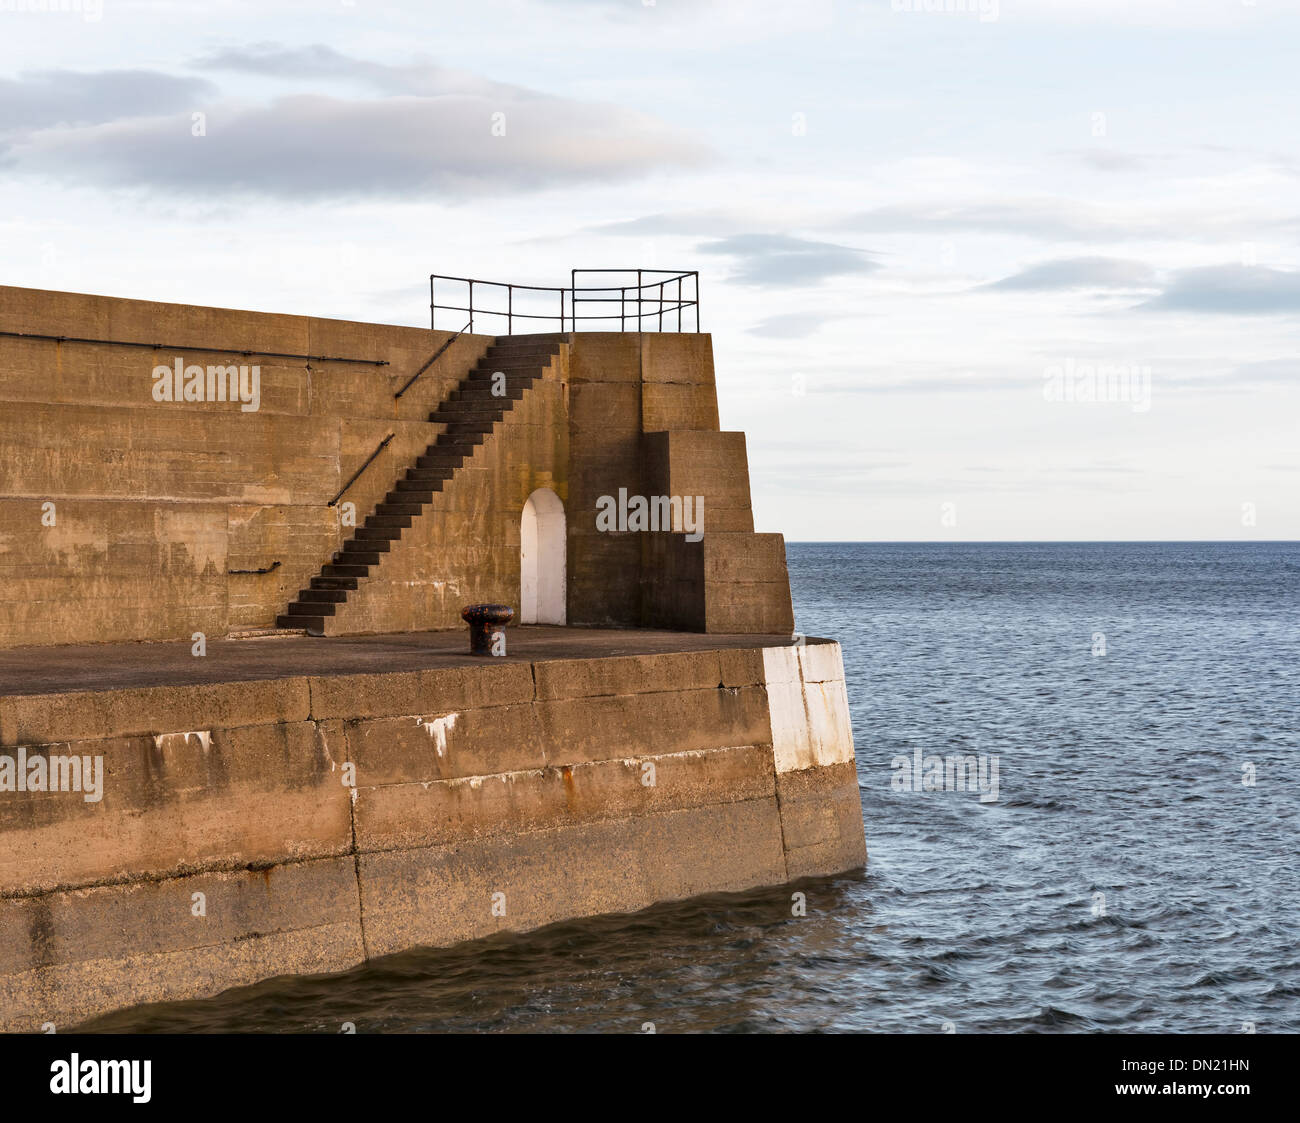 Lossiemouth harbour, the end of the pier. - Stock Image